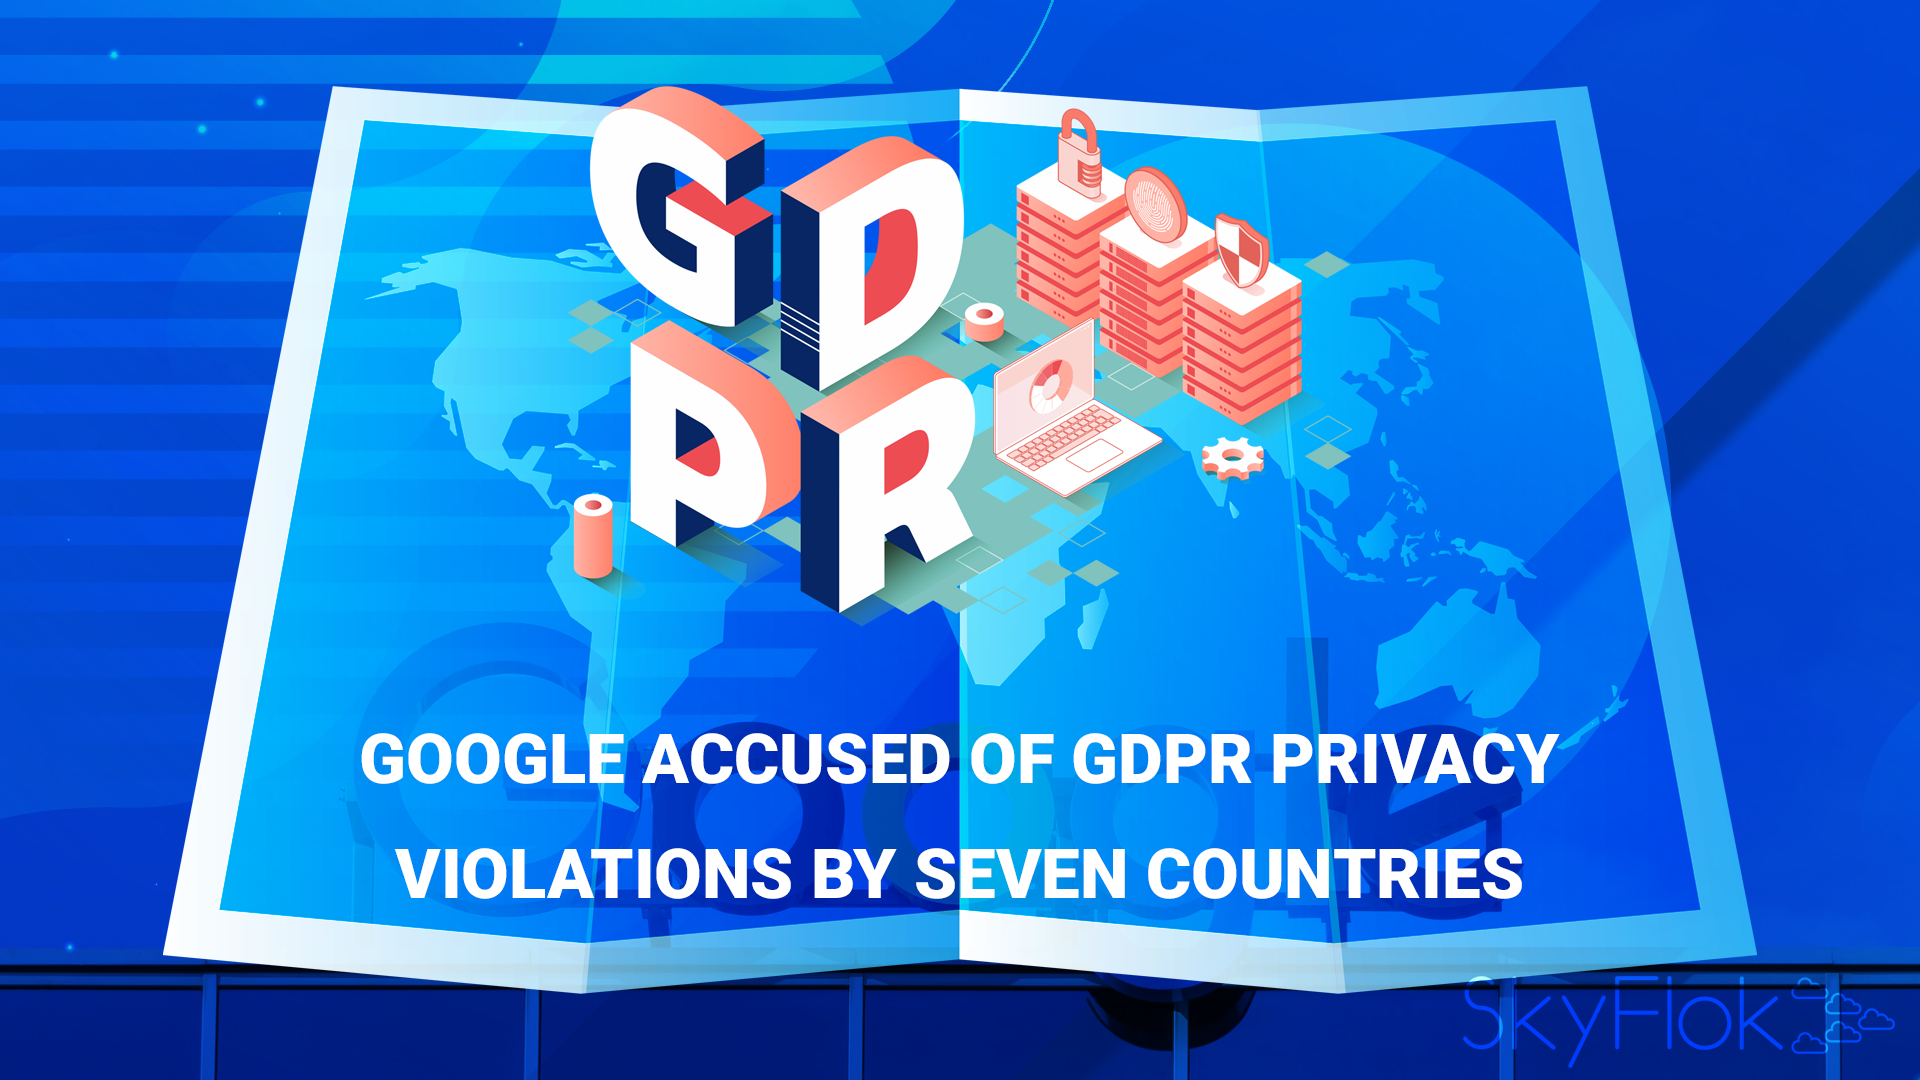 Google accused of GDPR privacy violations by seven countries